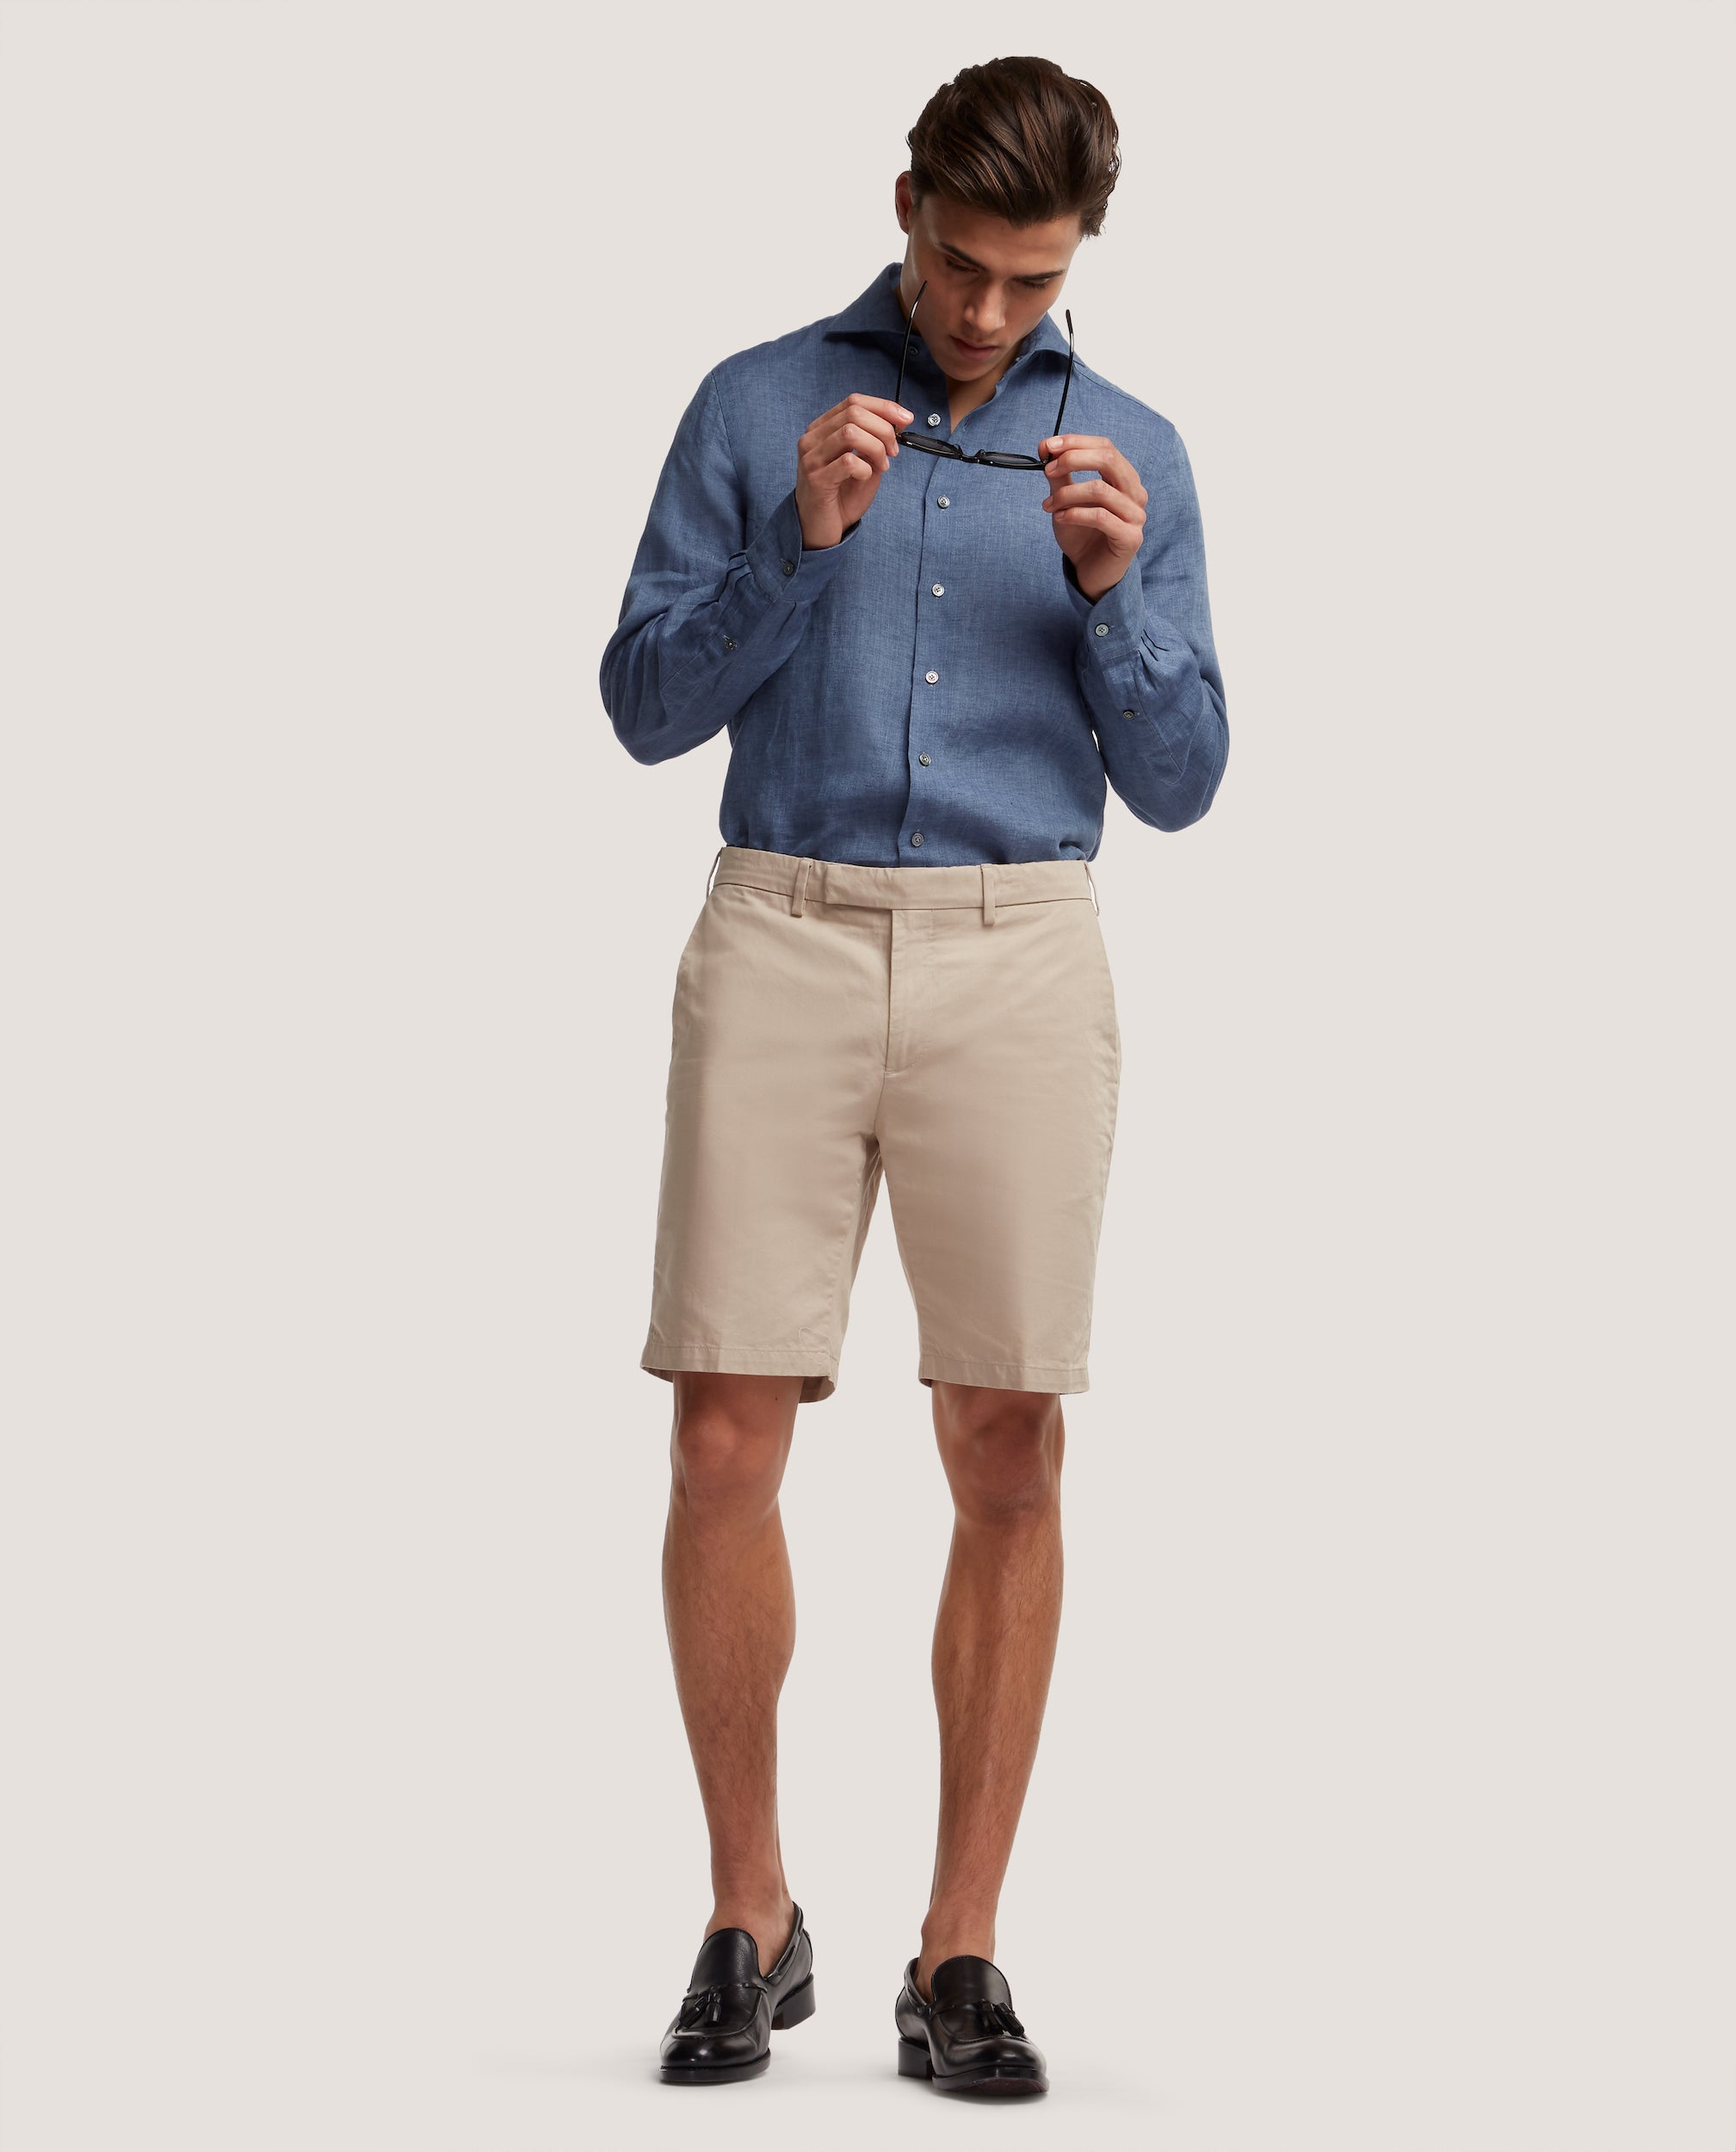 STEVEN Chino Shorts | Medium length | Cotton-linen blend | Sand